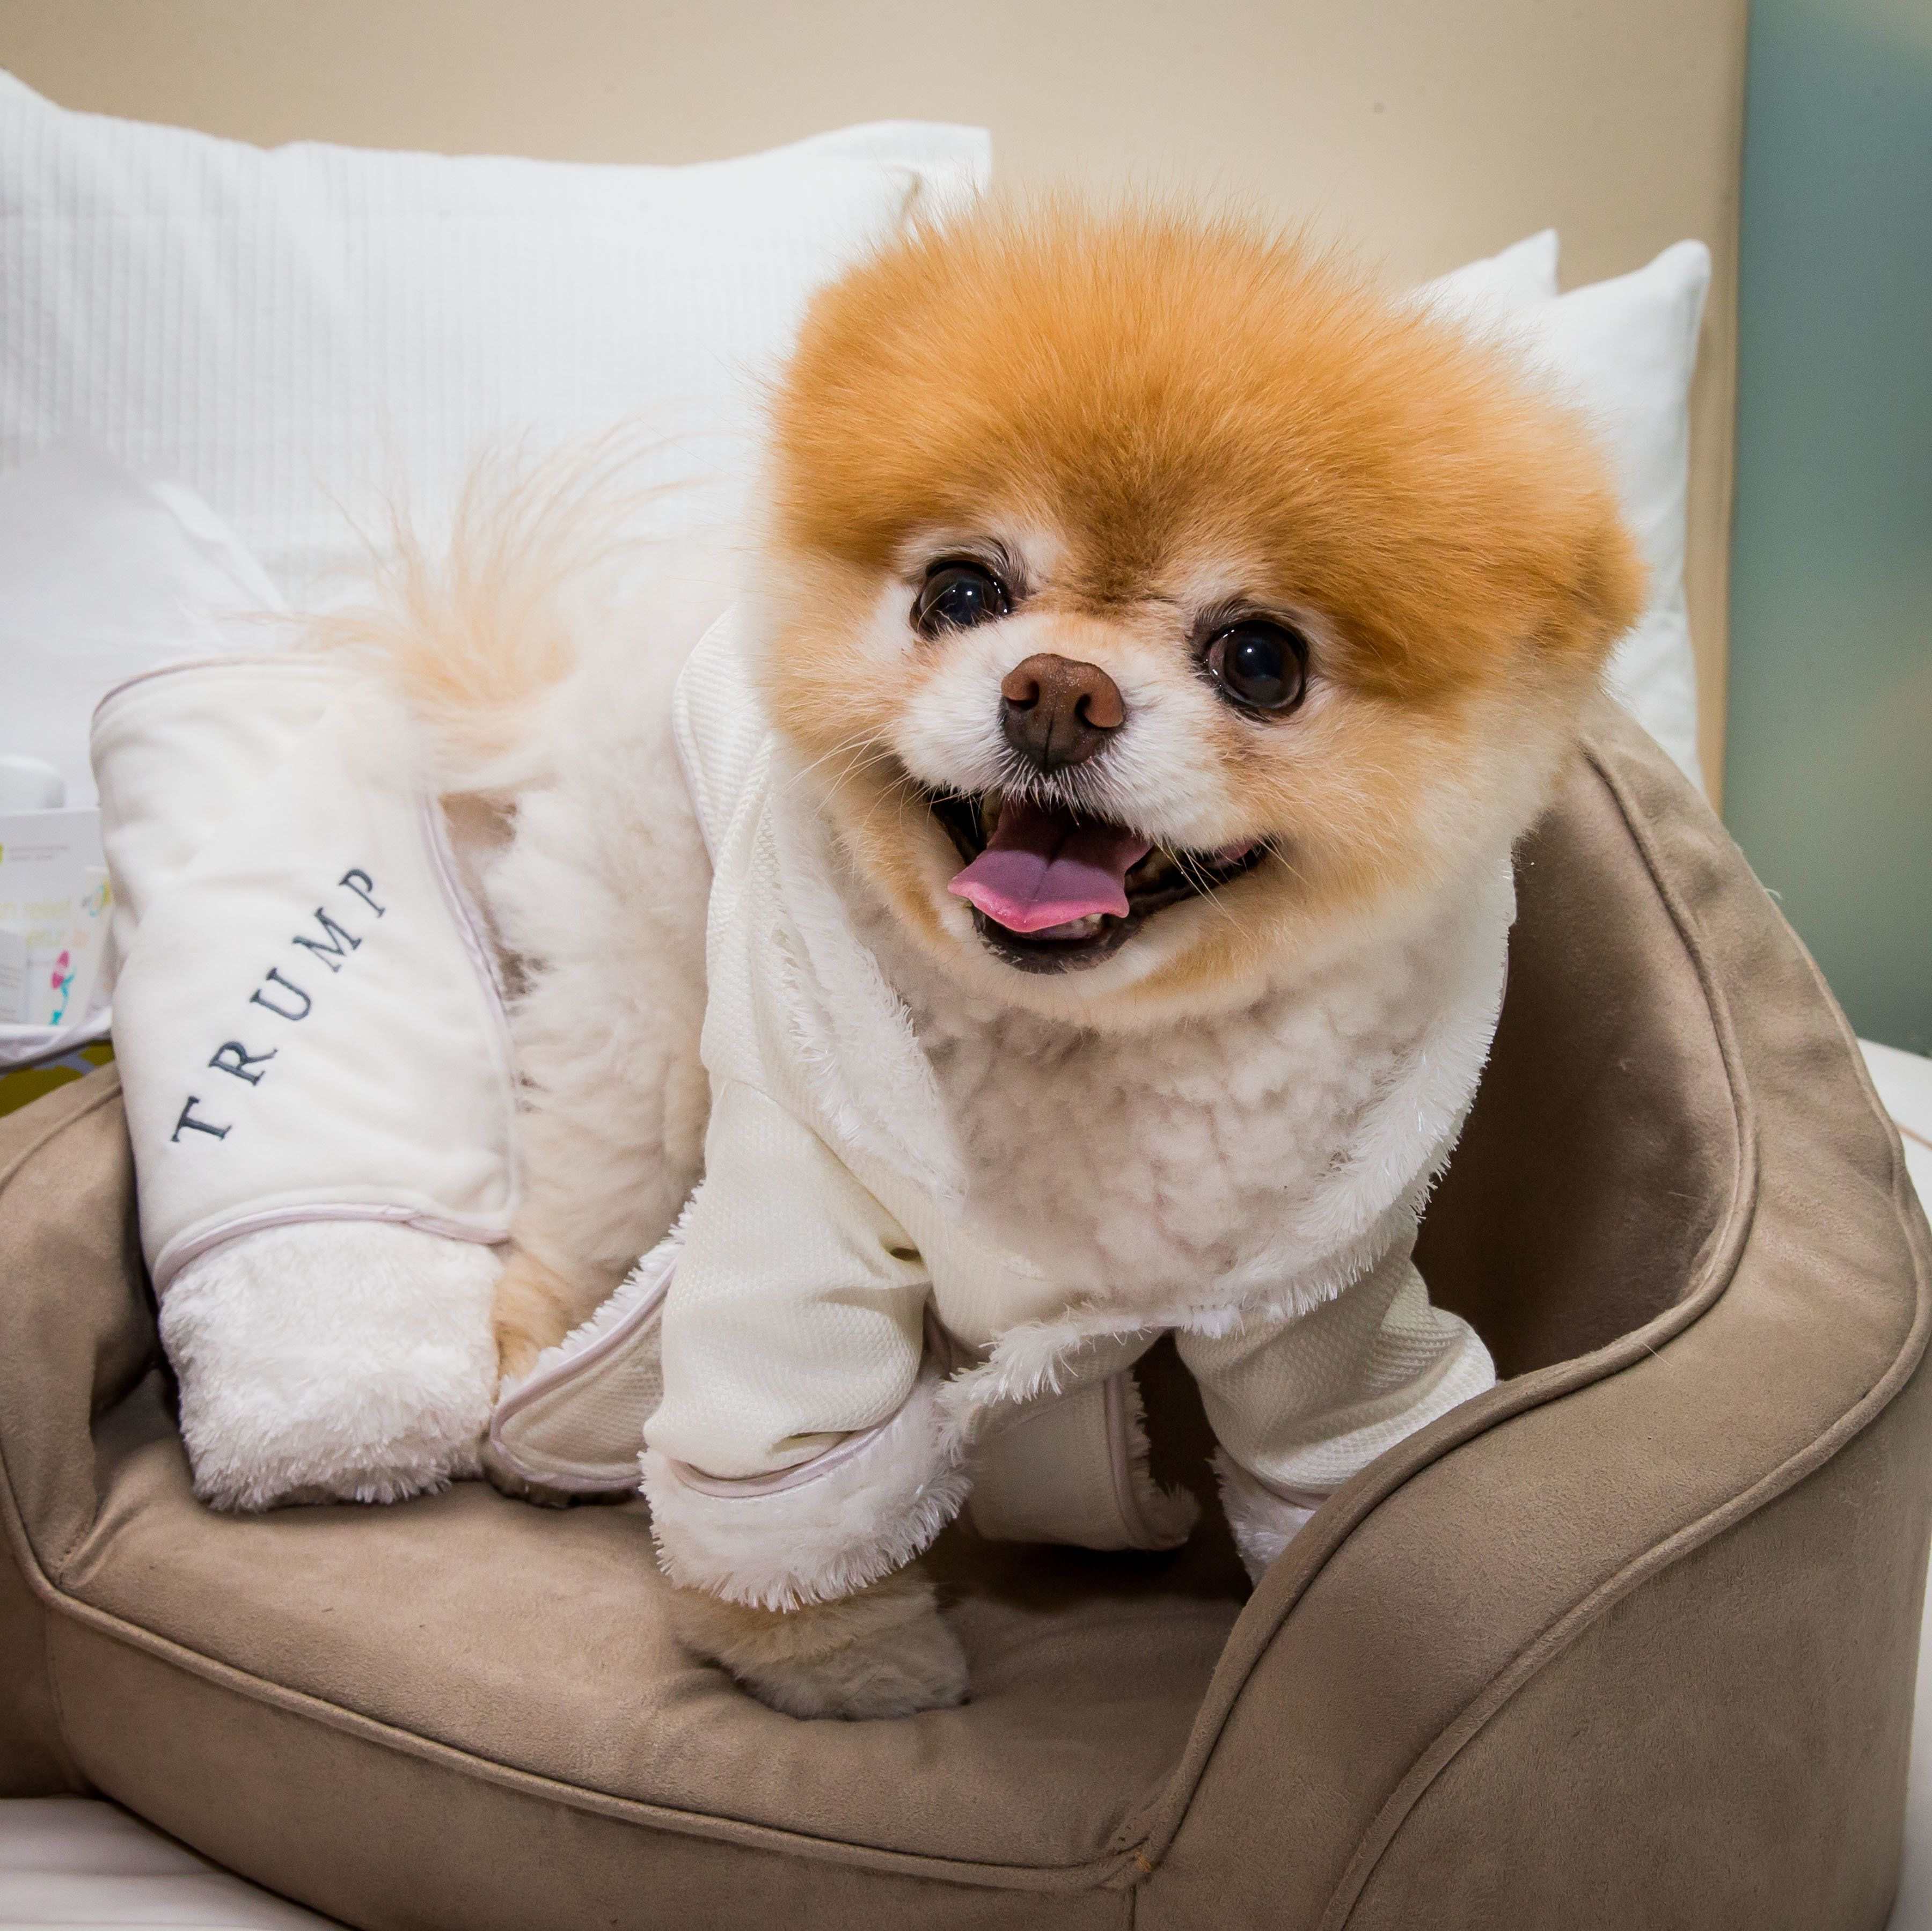 LAS VEGAS, NV - April 28 : Buddy and Boo pictured as Boo, 'The World's Cutest Dog' sighting at a luxury penthouse at Trump International Hotel in Las Vegas, NV on April 28, 2014. RTNKabik/MediaPunch ***HOUSE COVERAGE***